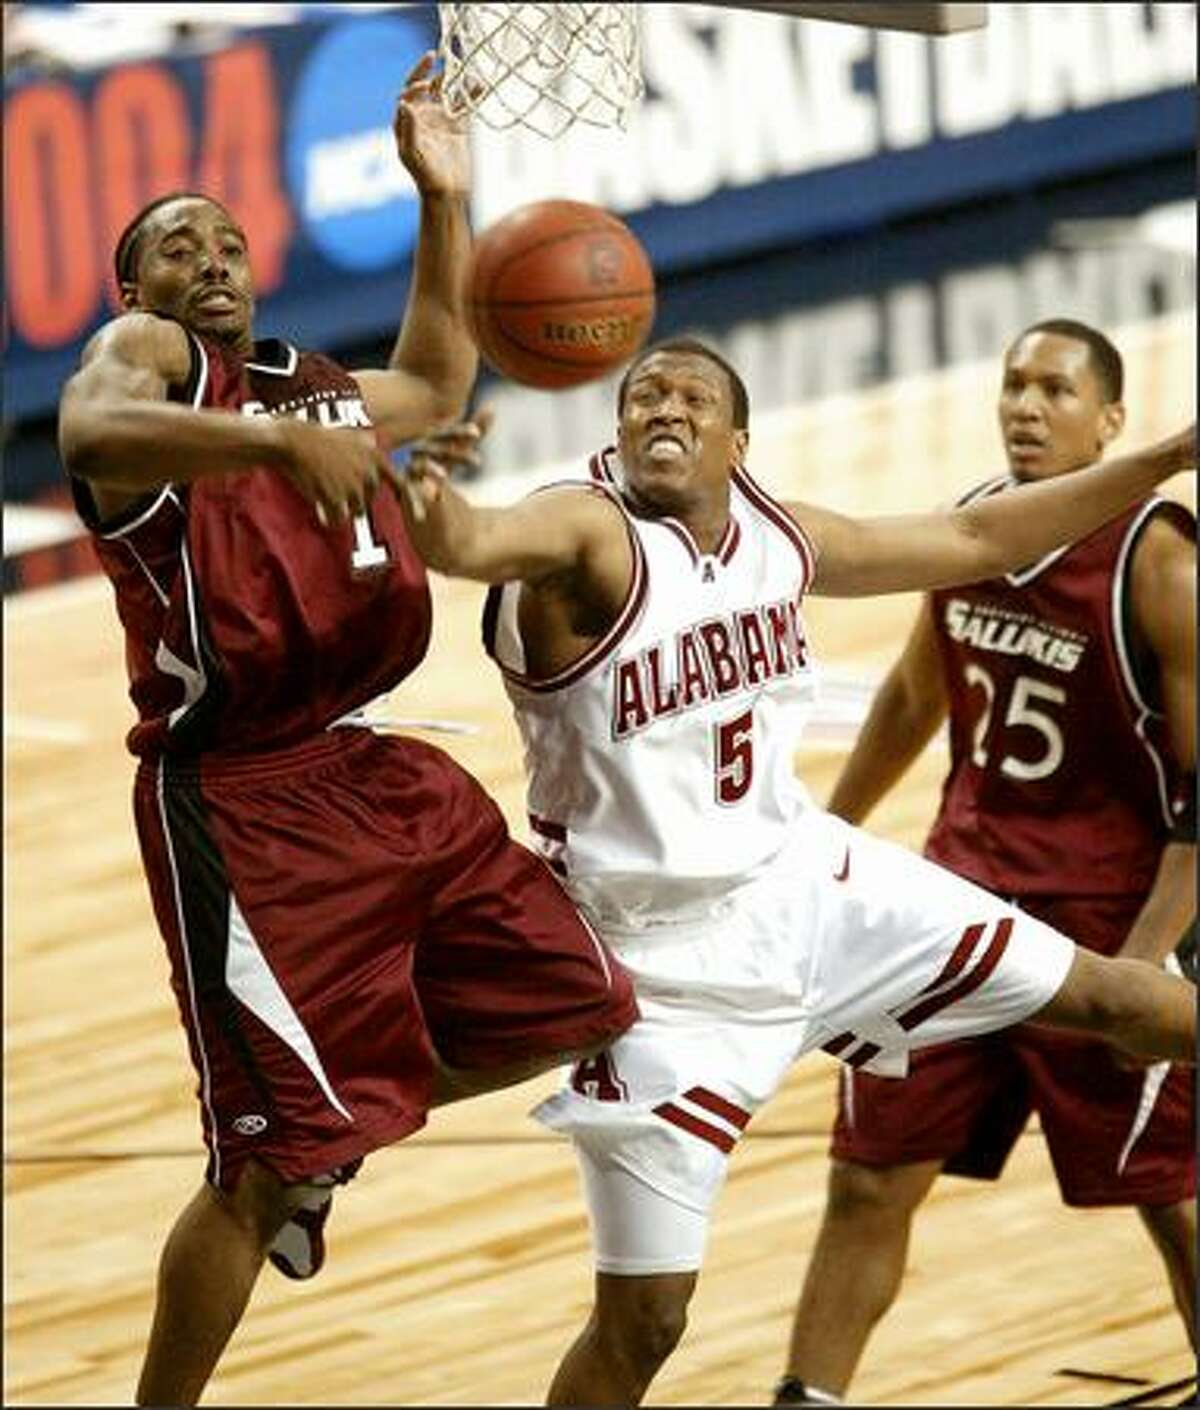 Alabama's Earnest Shelton and Southern Illinois' Darren Brooks fight for a loose ball during the Crimson Tide's 65-64 win in the first round of the NCAA Tournament.